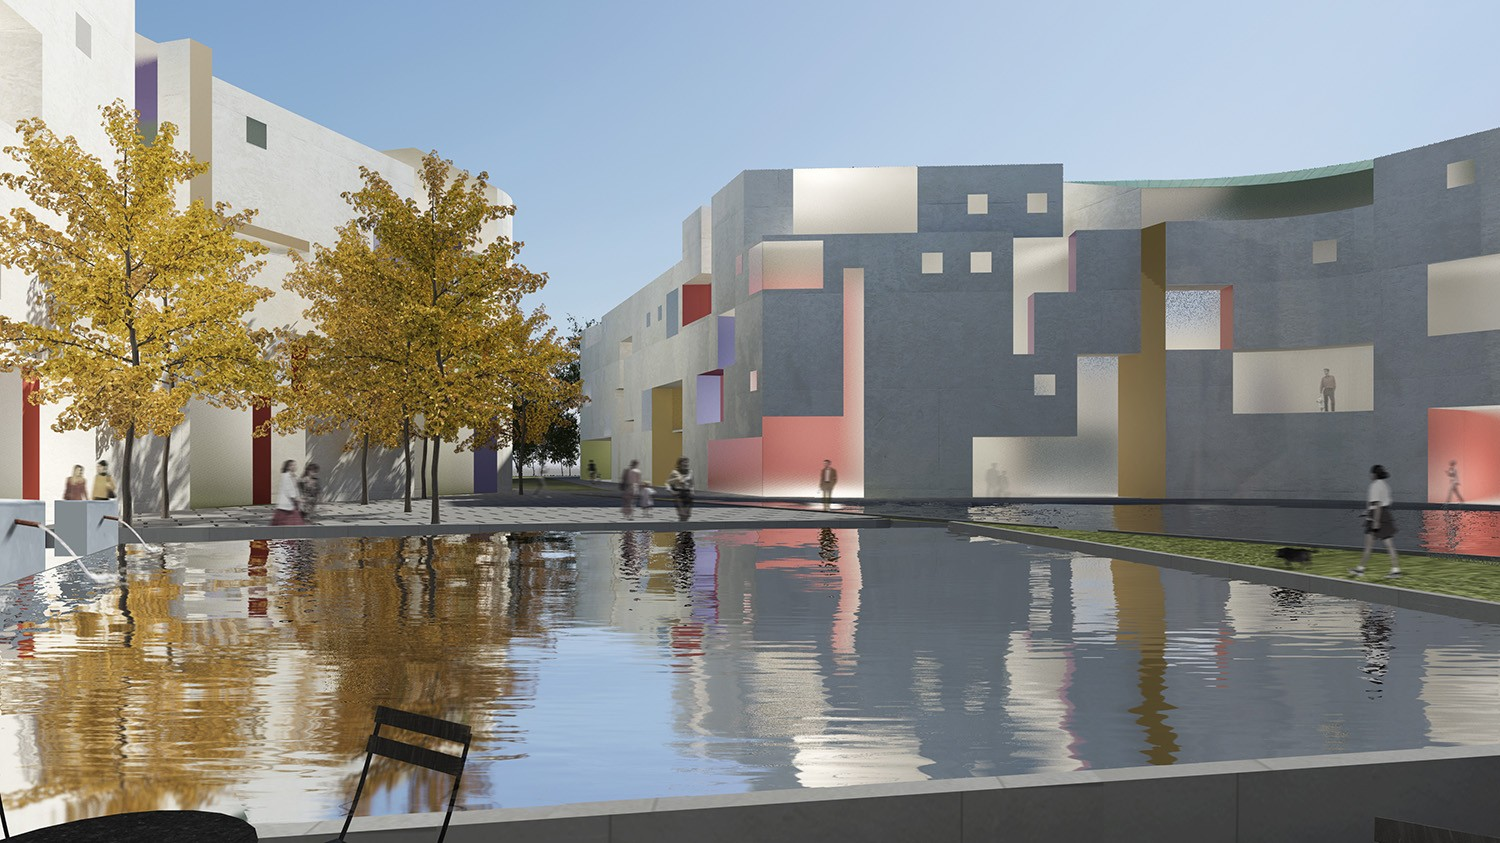 https://s3.us-east-2.amazonaws.com/steven-holl/uploads/projects/project-images/StevenHollArchitects_MGI_SHA-Moscow-main plaza_3_WH.jpg